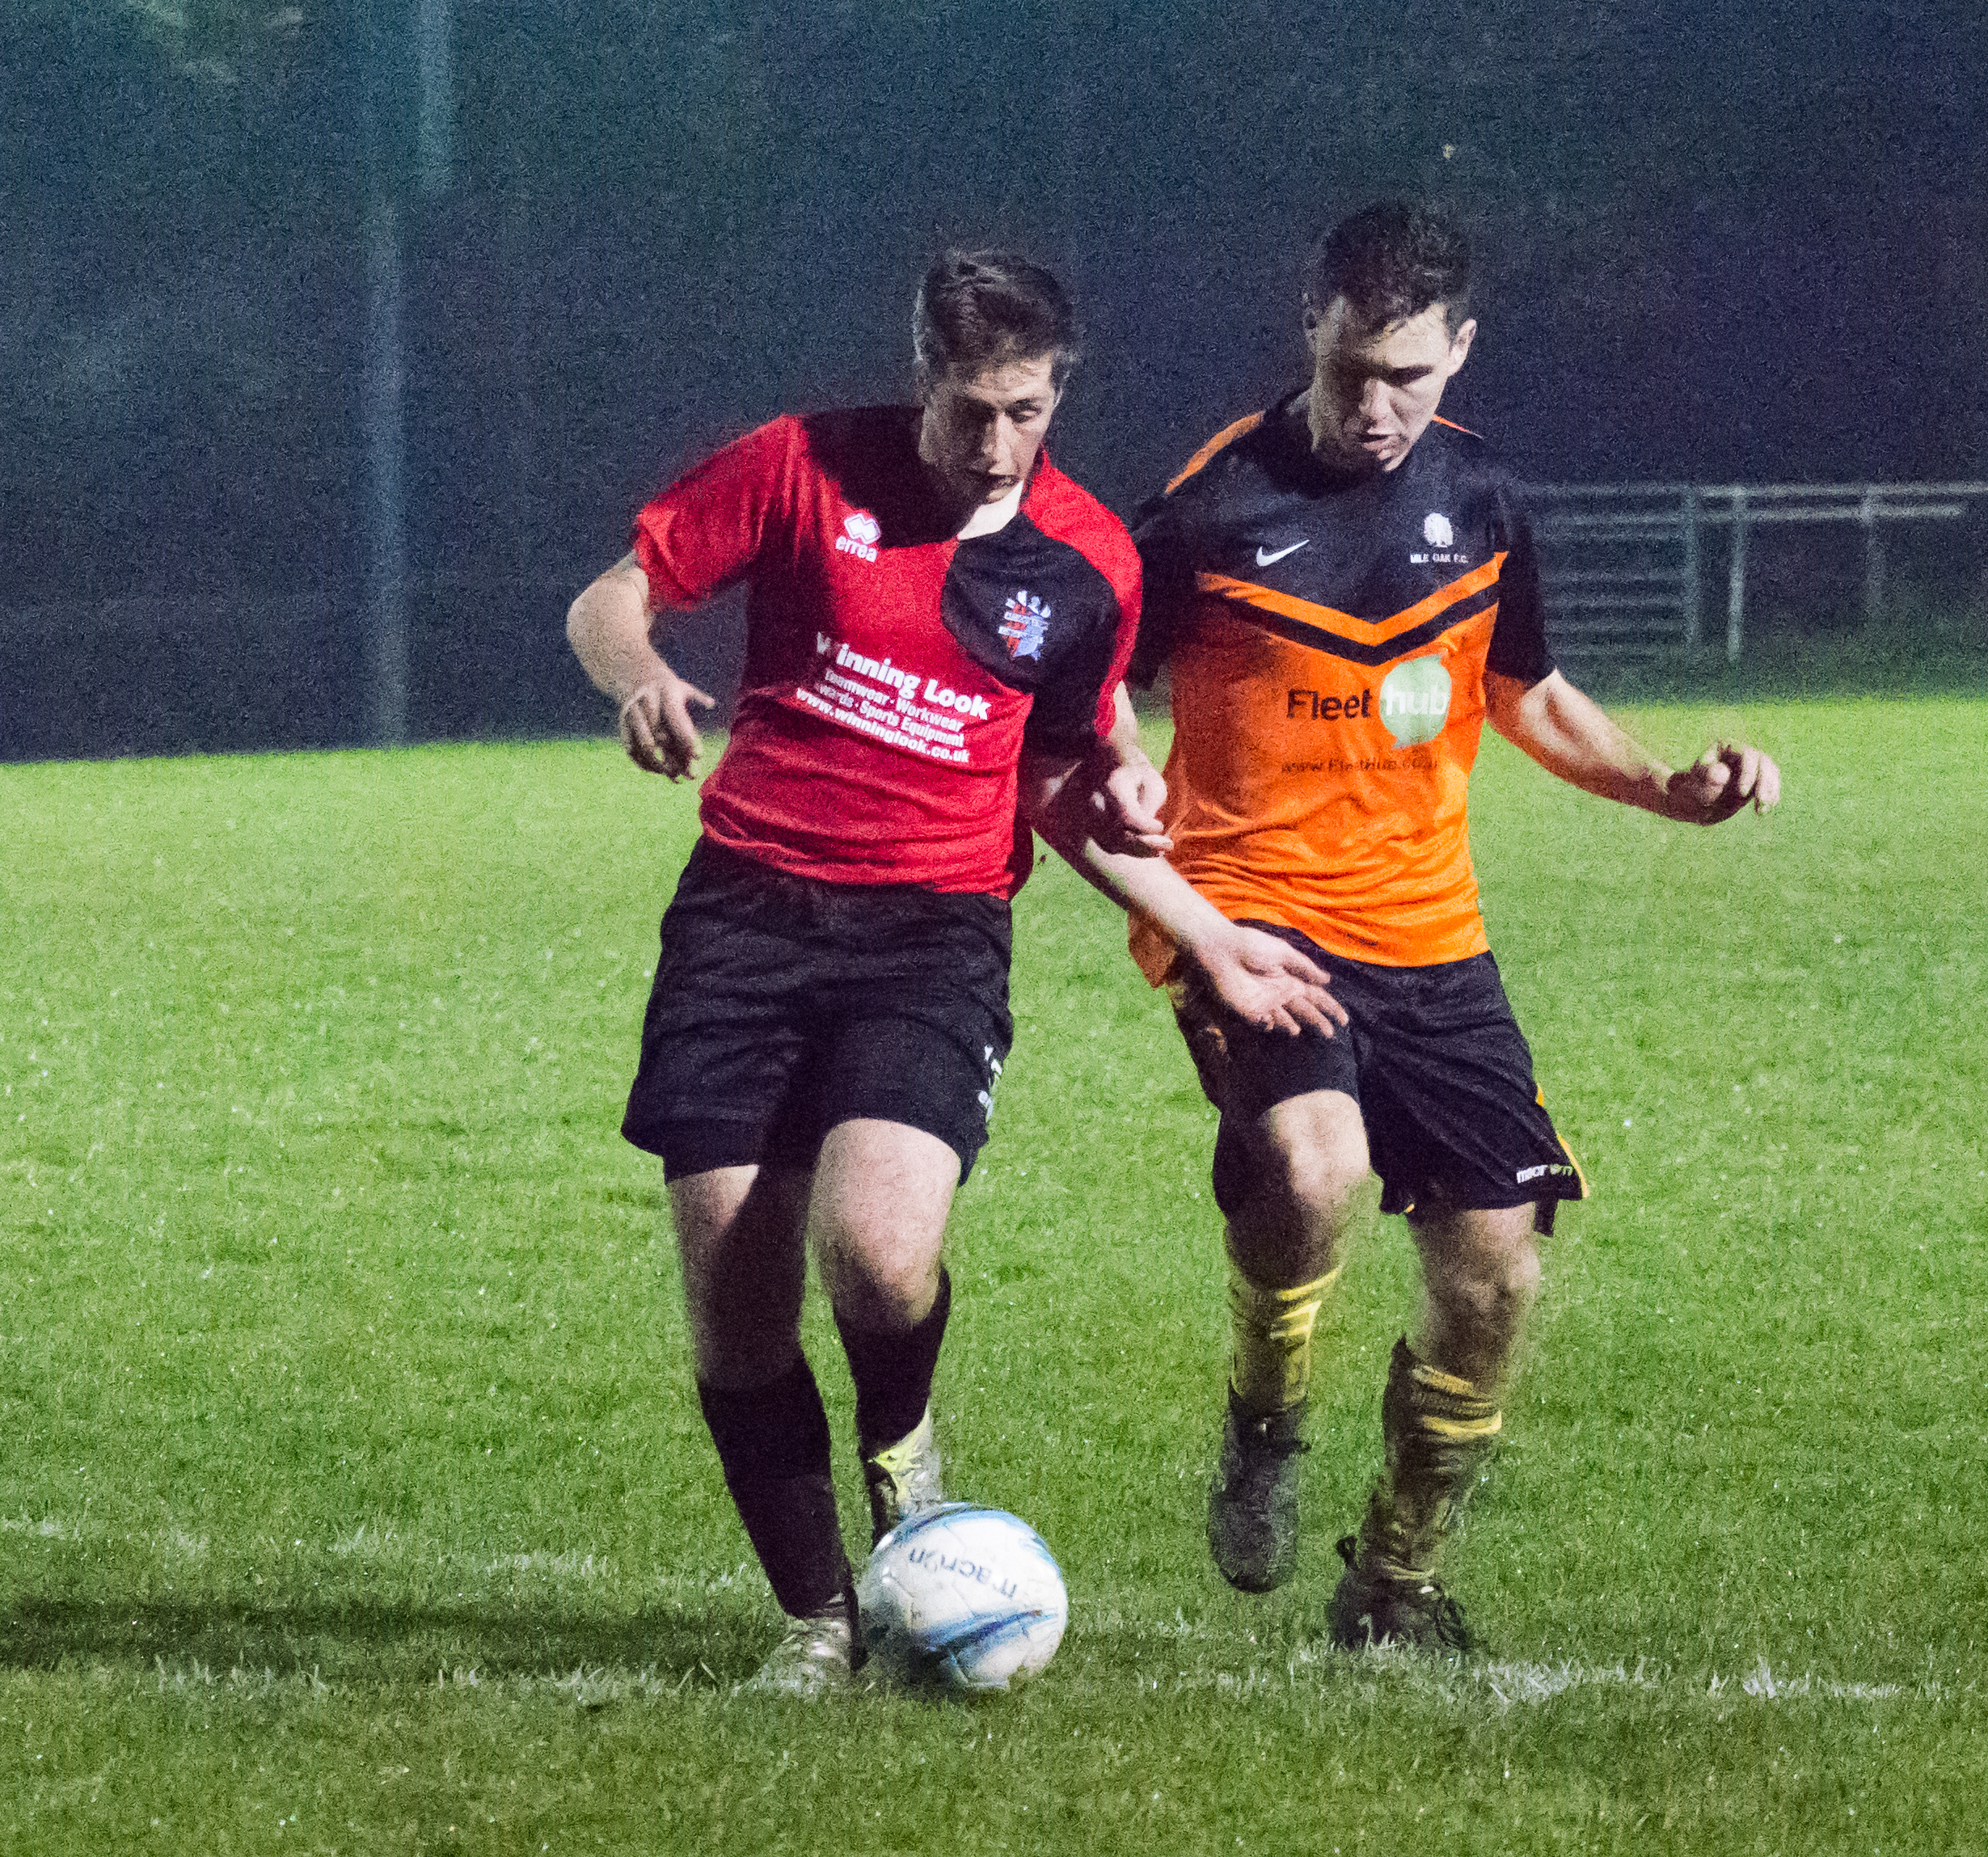 Mile Oak U21s vs Uckfield U21s 02.11.17 13